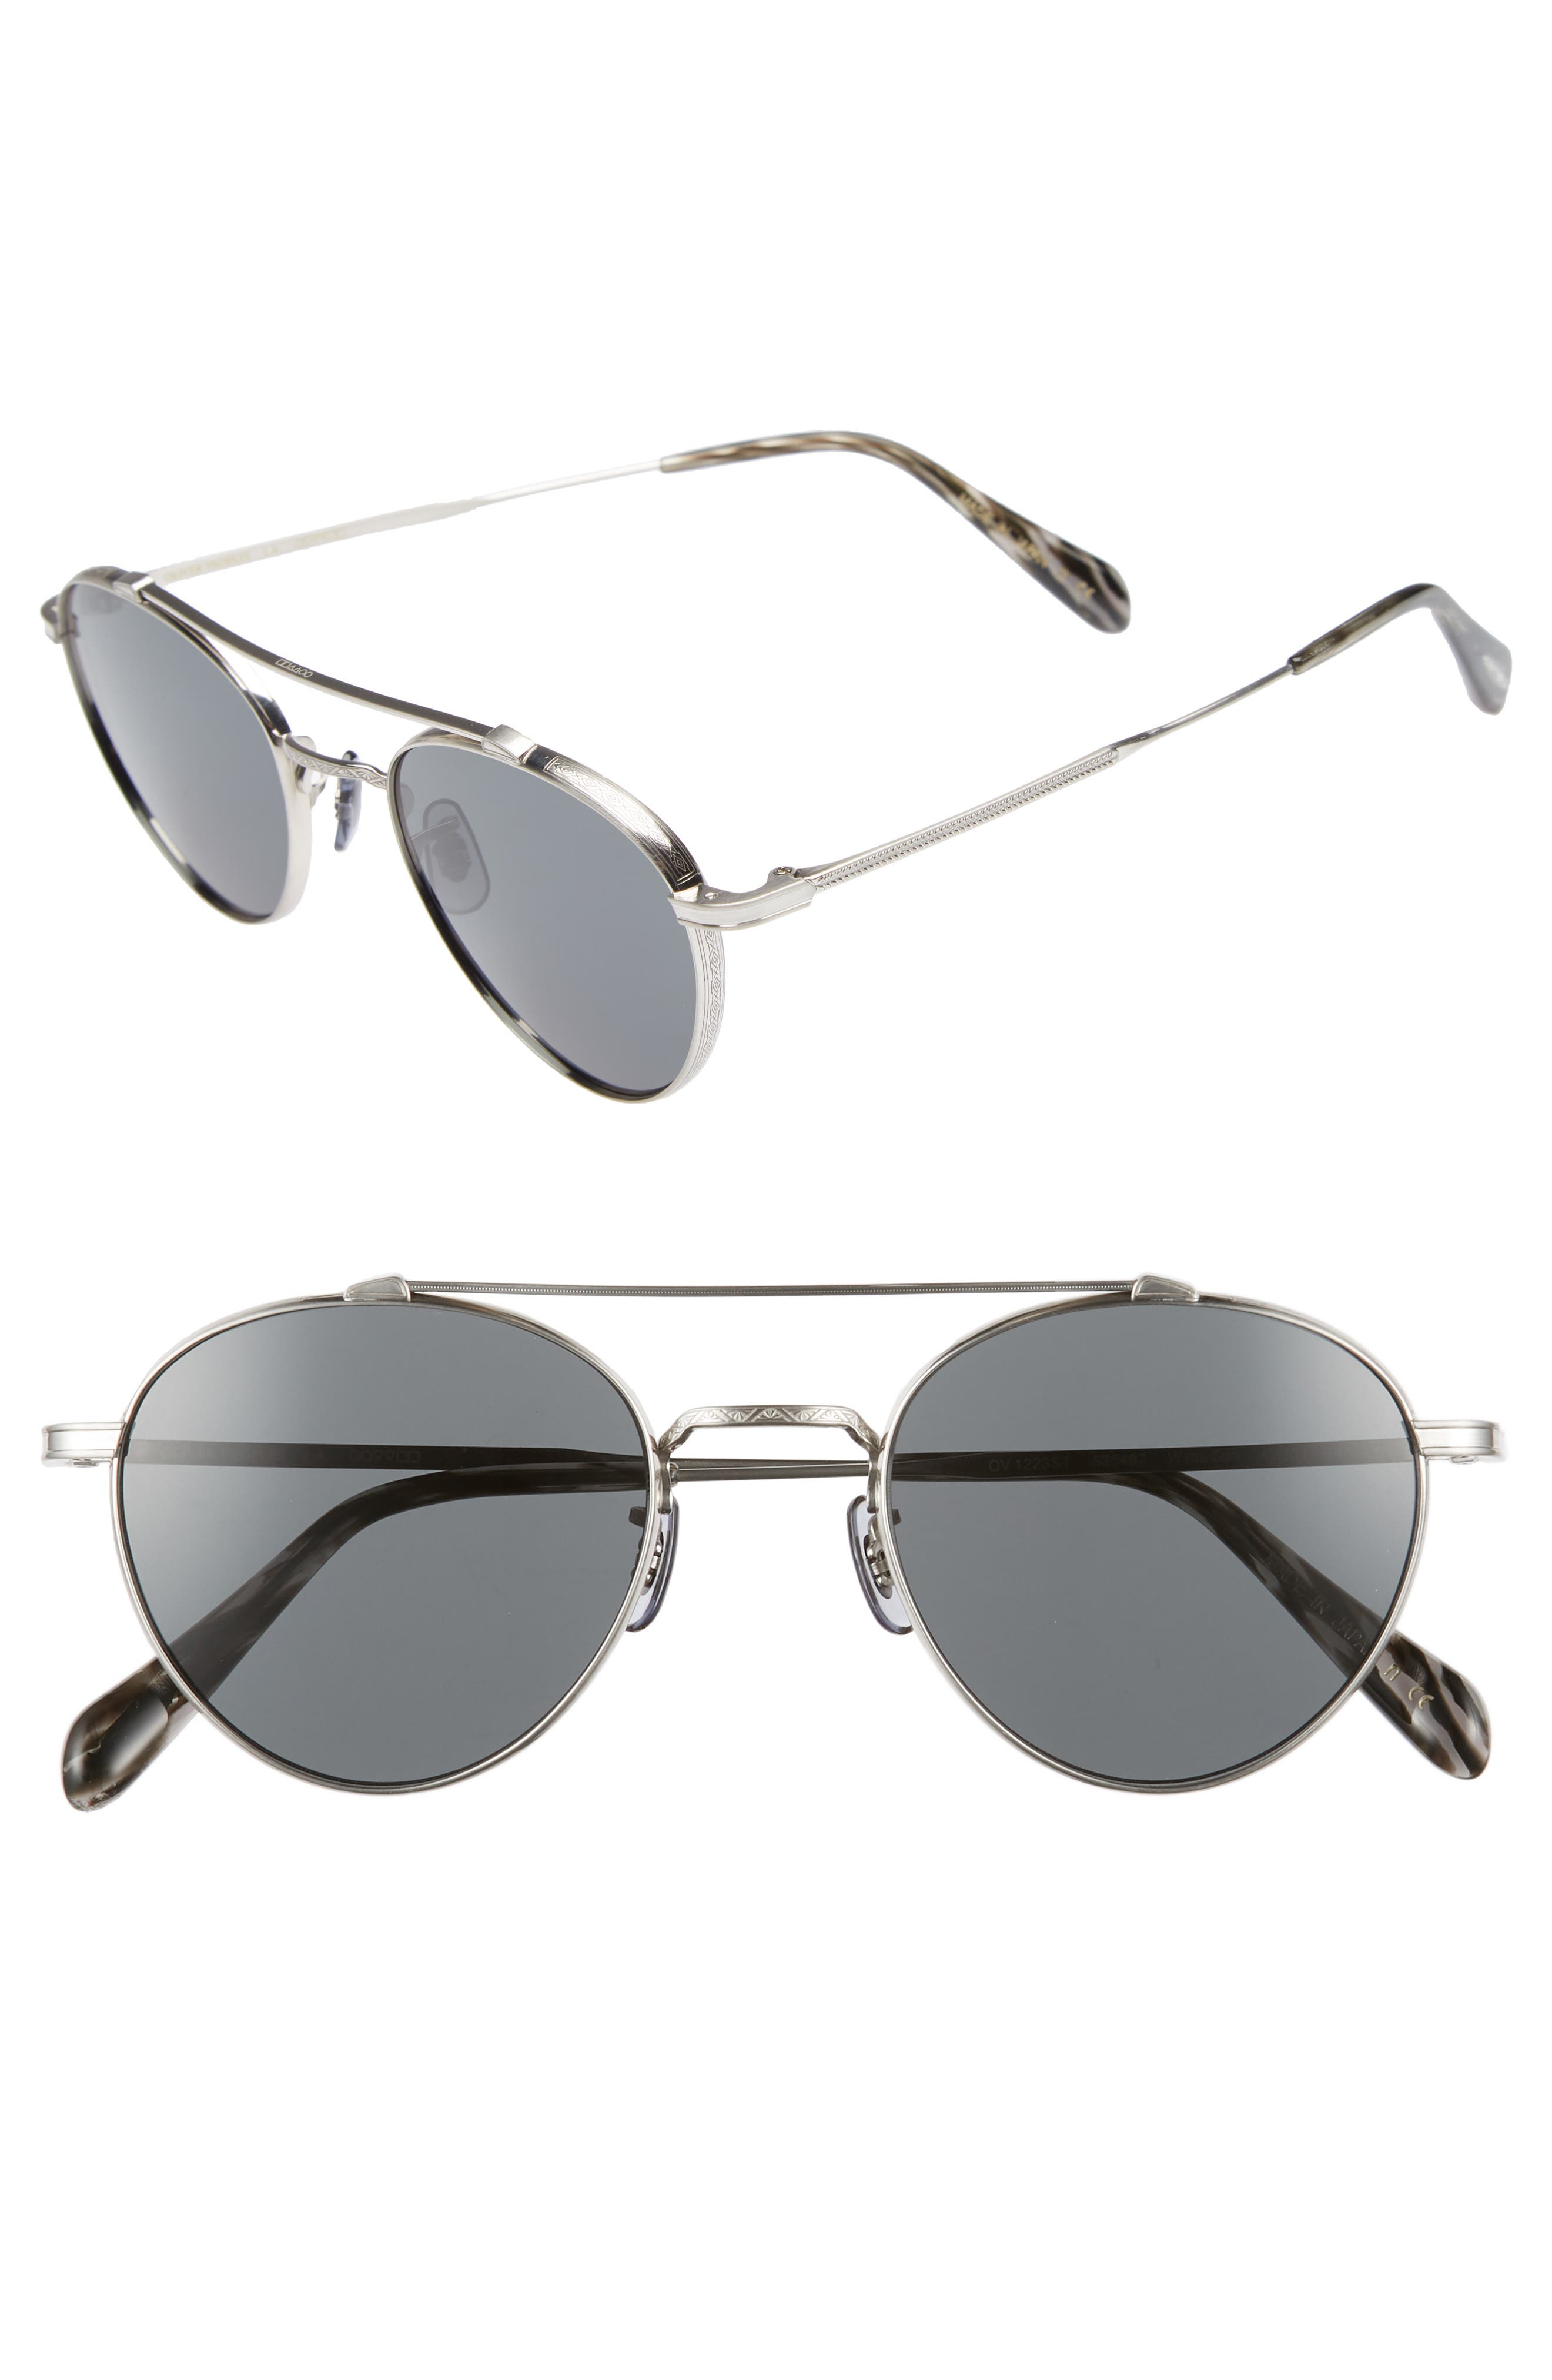 Watts 49mm Round Sunglasses,                             Main thumbnail 1, color,                             020